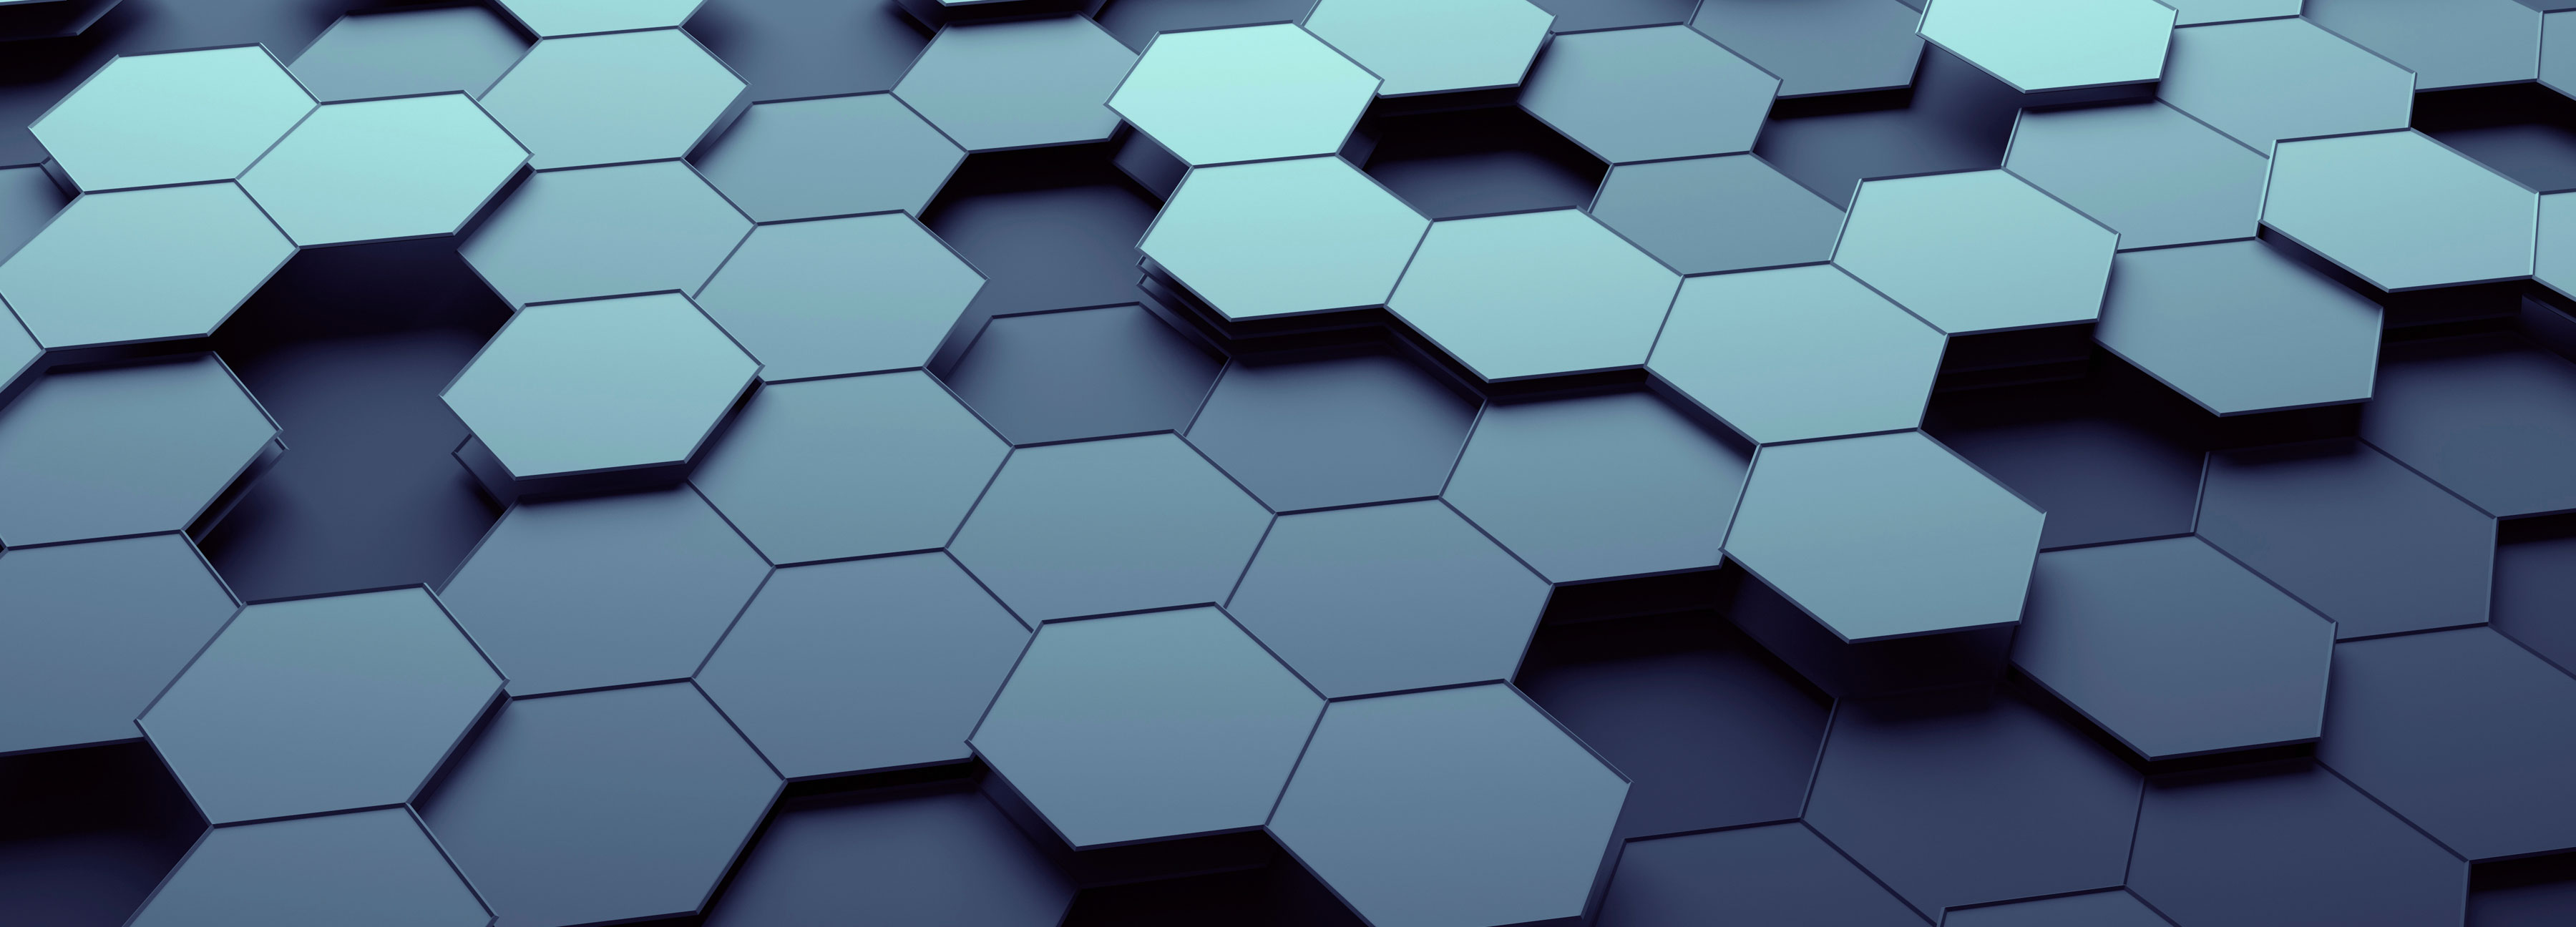 A series of hexagonal shapes stacked together